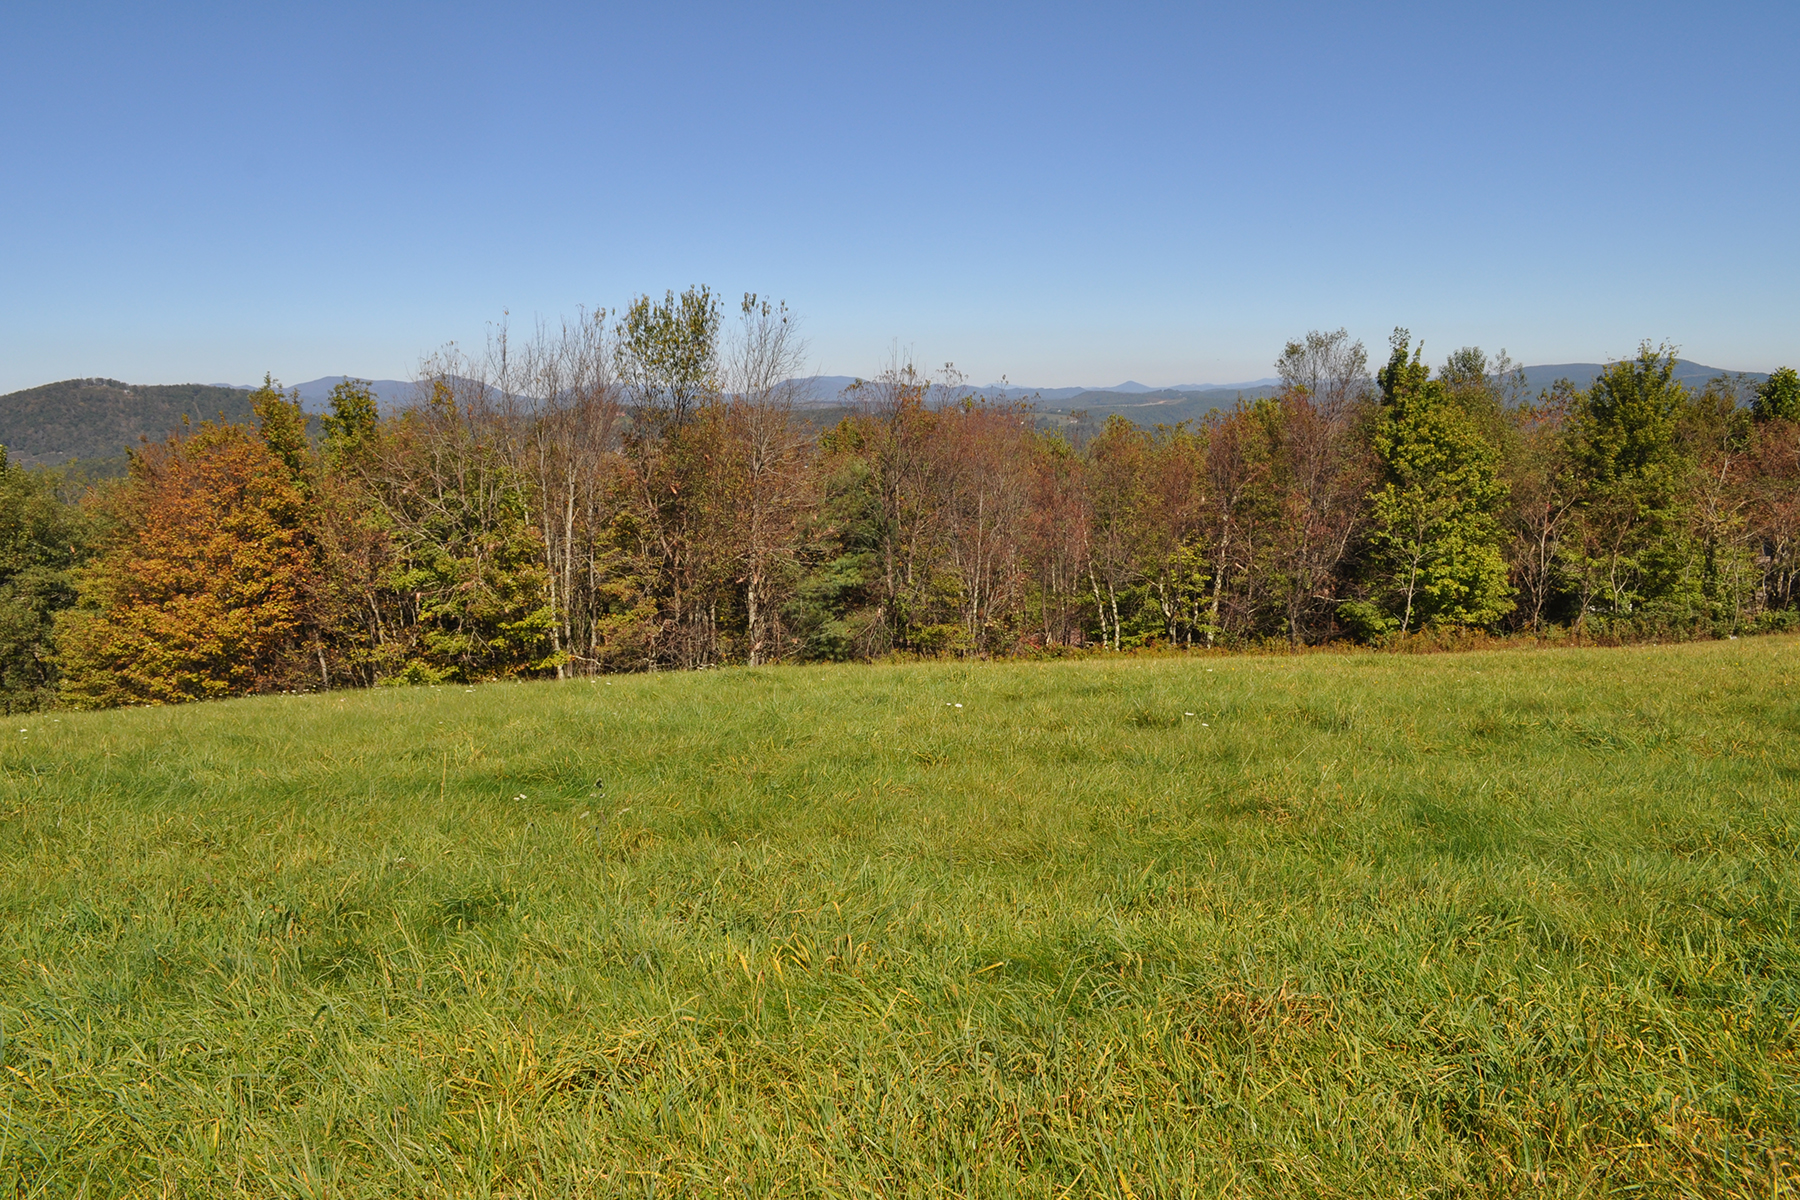 Land for Sale at SORRENTO SKIES - BOONE Lot 16 Bella Vista, Boone, North Carolina 28607 United States